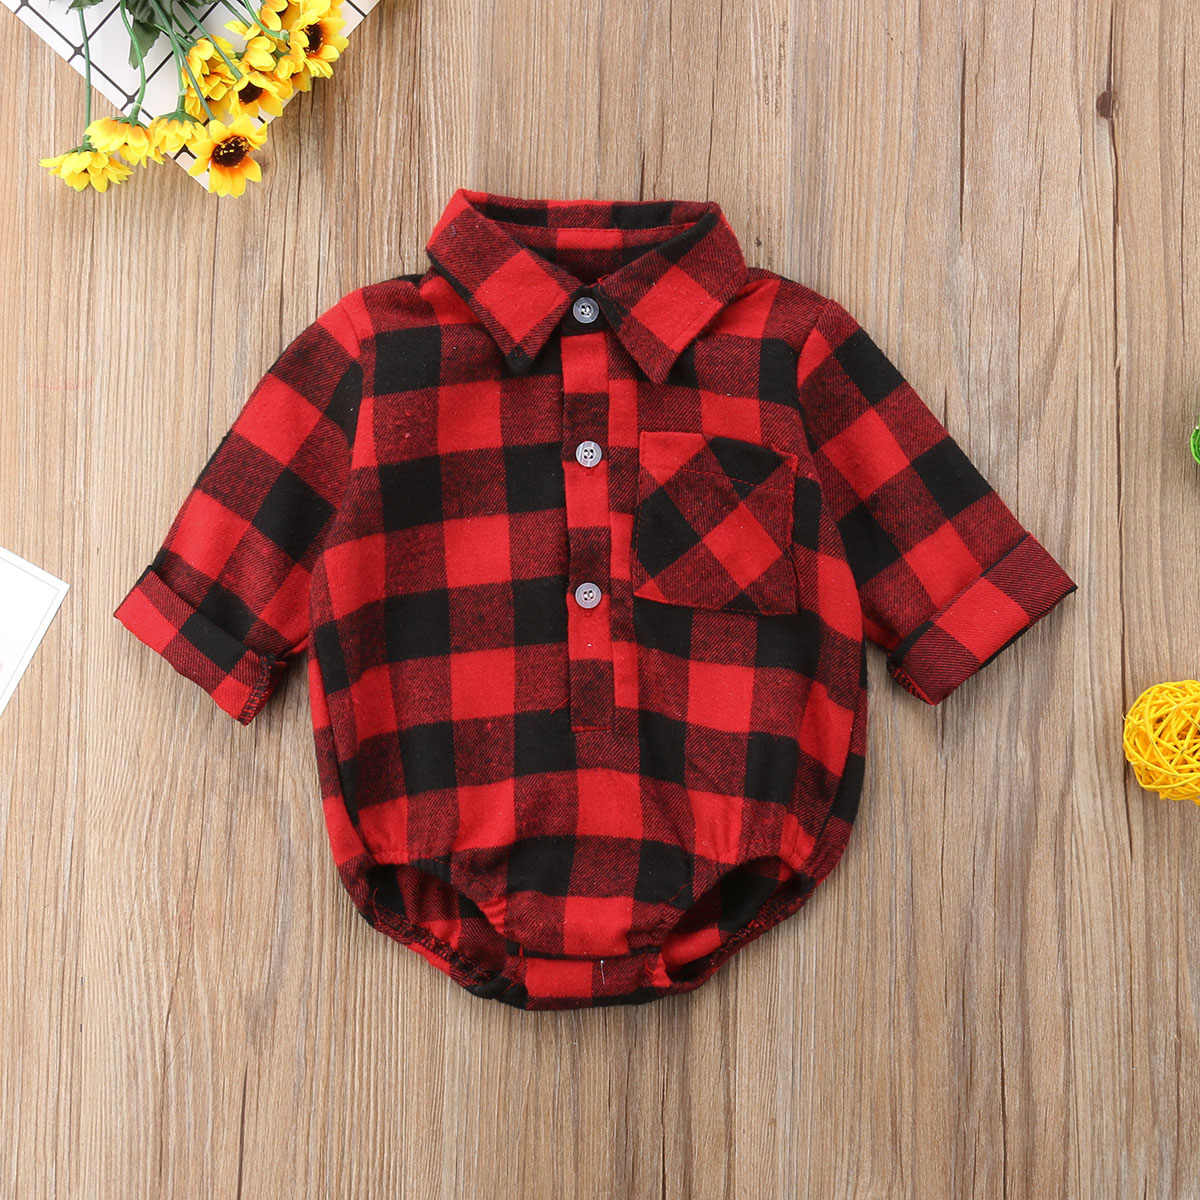 2018 Brand New Christmas Clothes Toddler Baby Girl Boy Bodysuit Long Sleeve Single Breasted Plaid Back Deer Elk Jumpsuits 0-24M